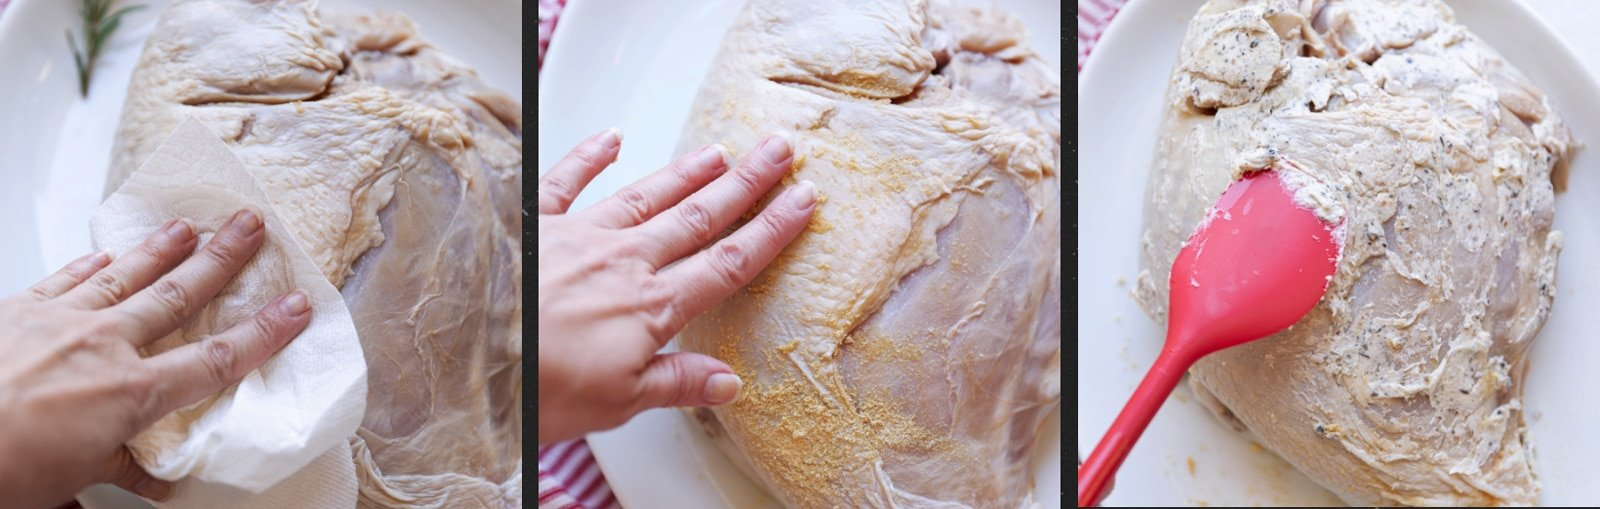 Person patting and applying rub and flavored butter to a raw turkey breast.